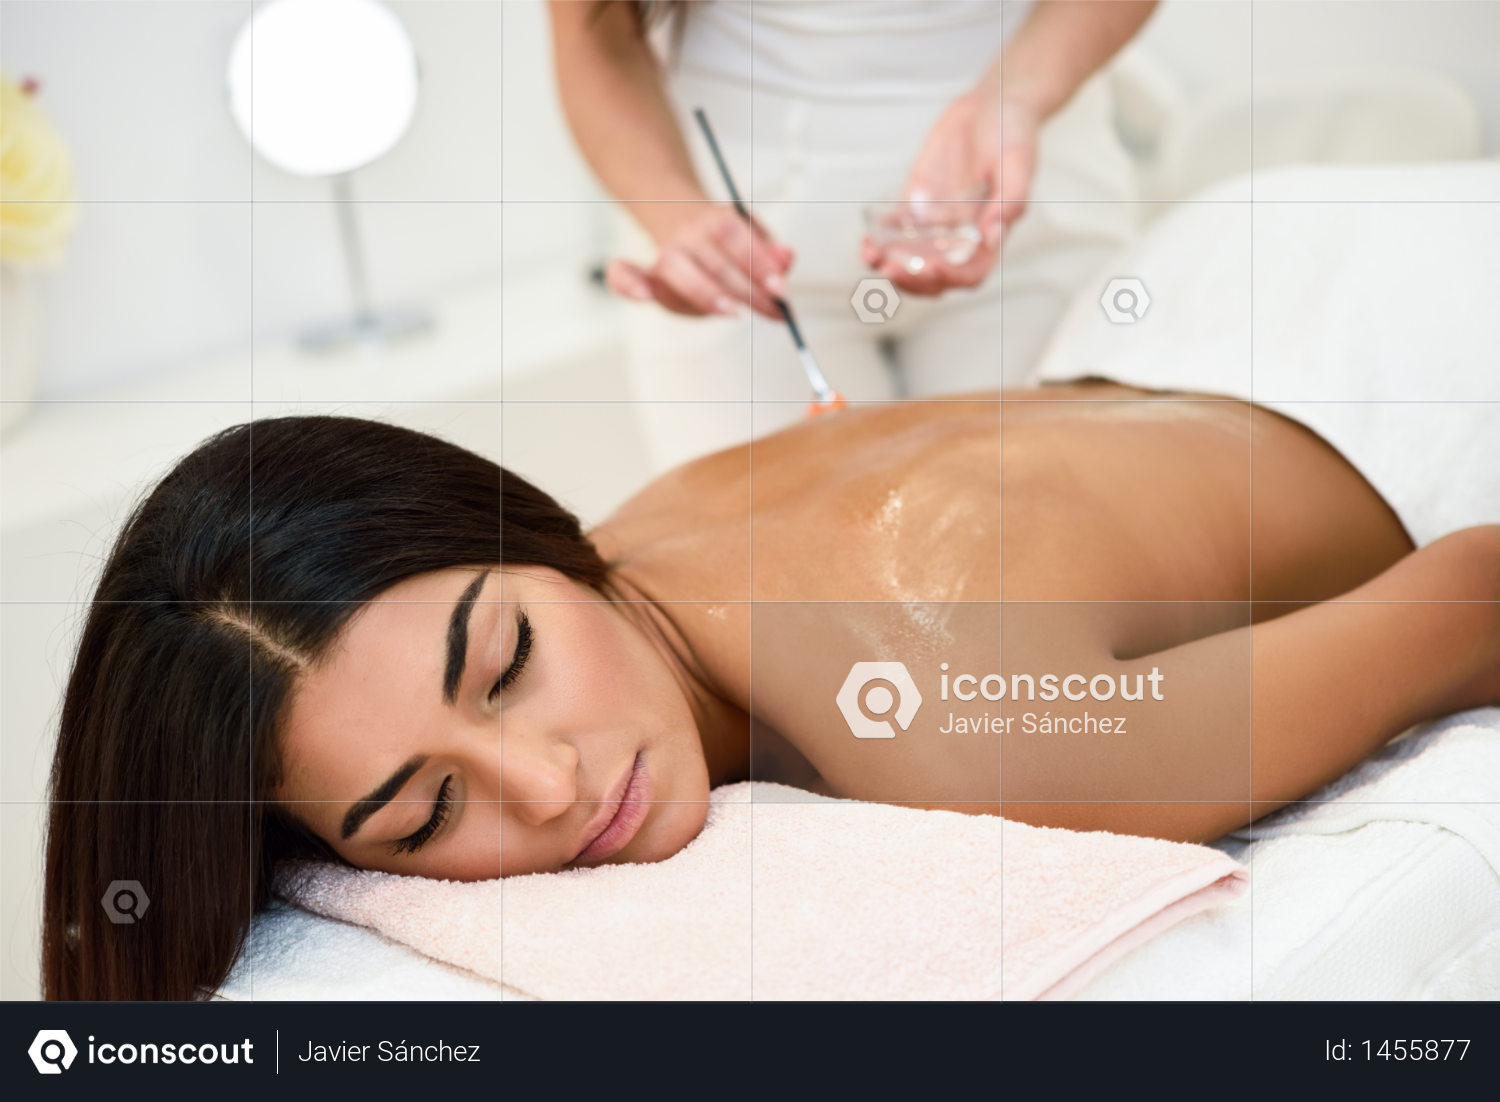 Arab woman receiving back massage treatment with oil brush in spa wellness center. Beauty and Aesthetic concepts. Photo